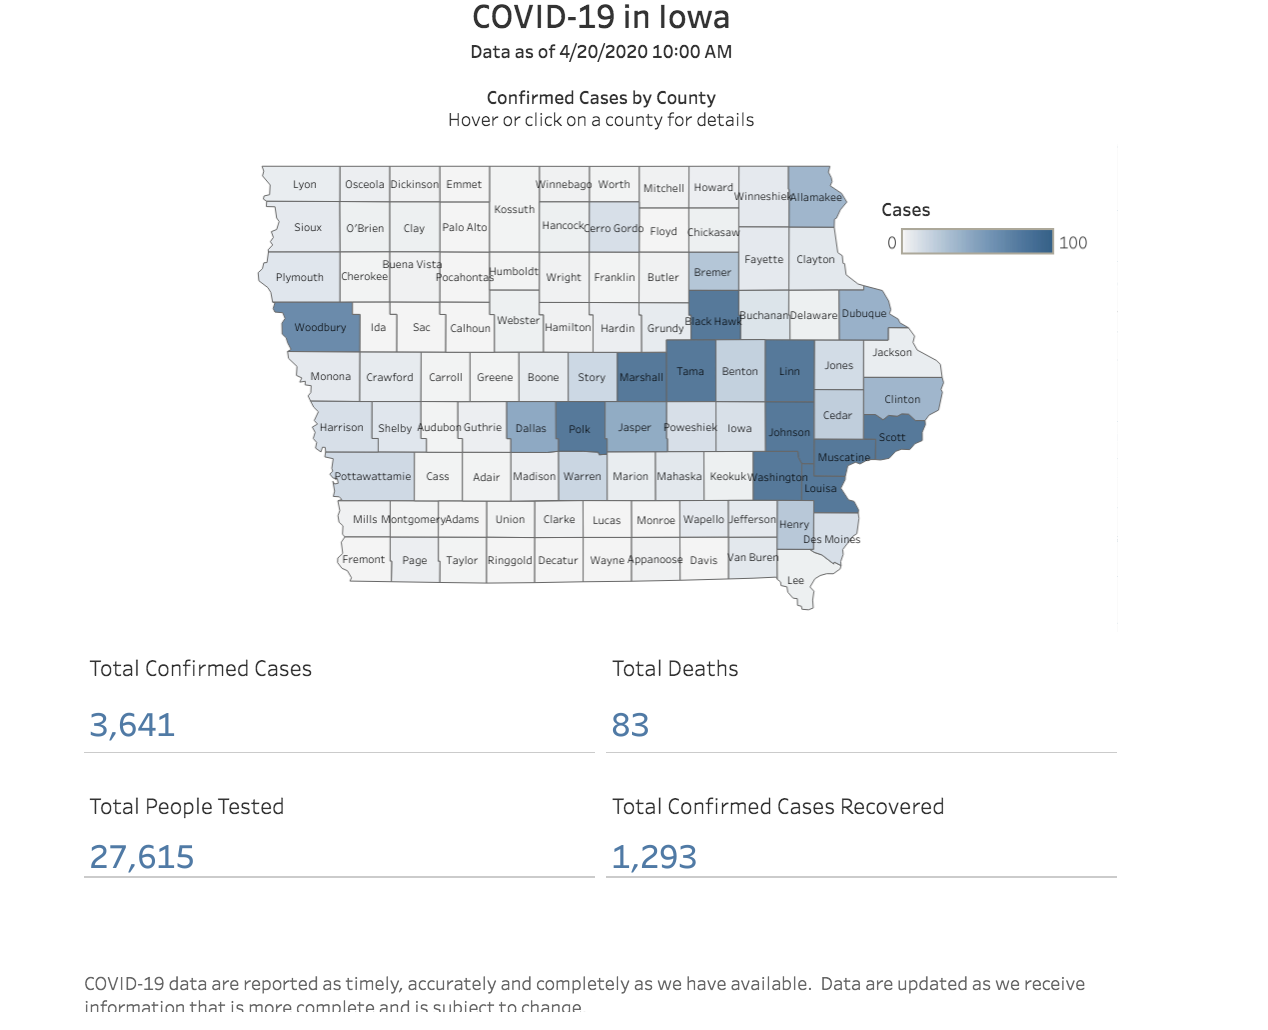 7 More COVID-19 Deaths, 107 New Cases in Iowa 15